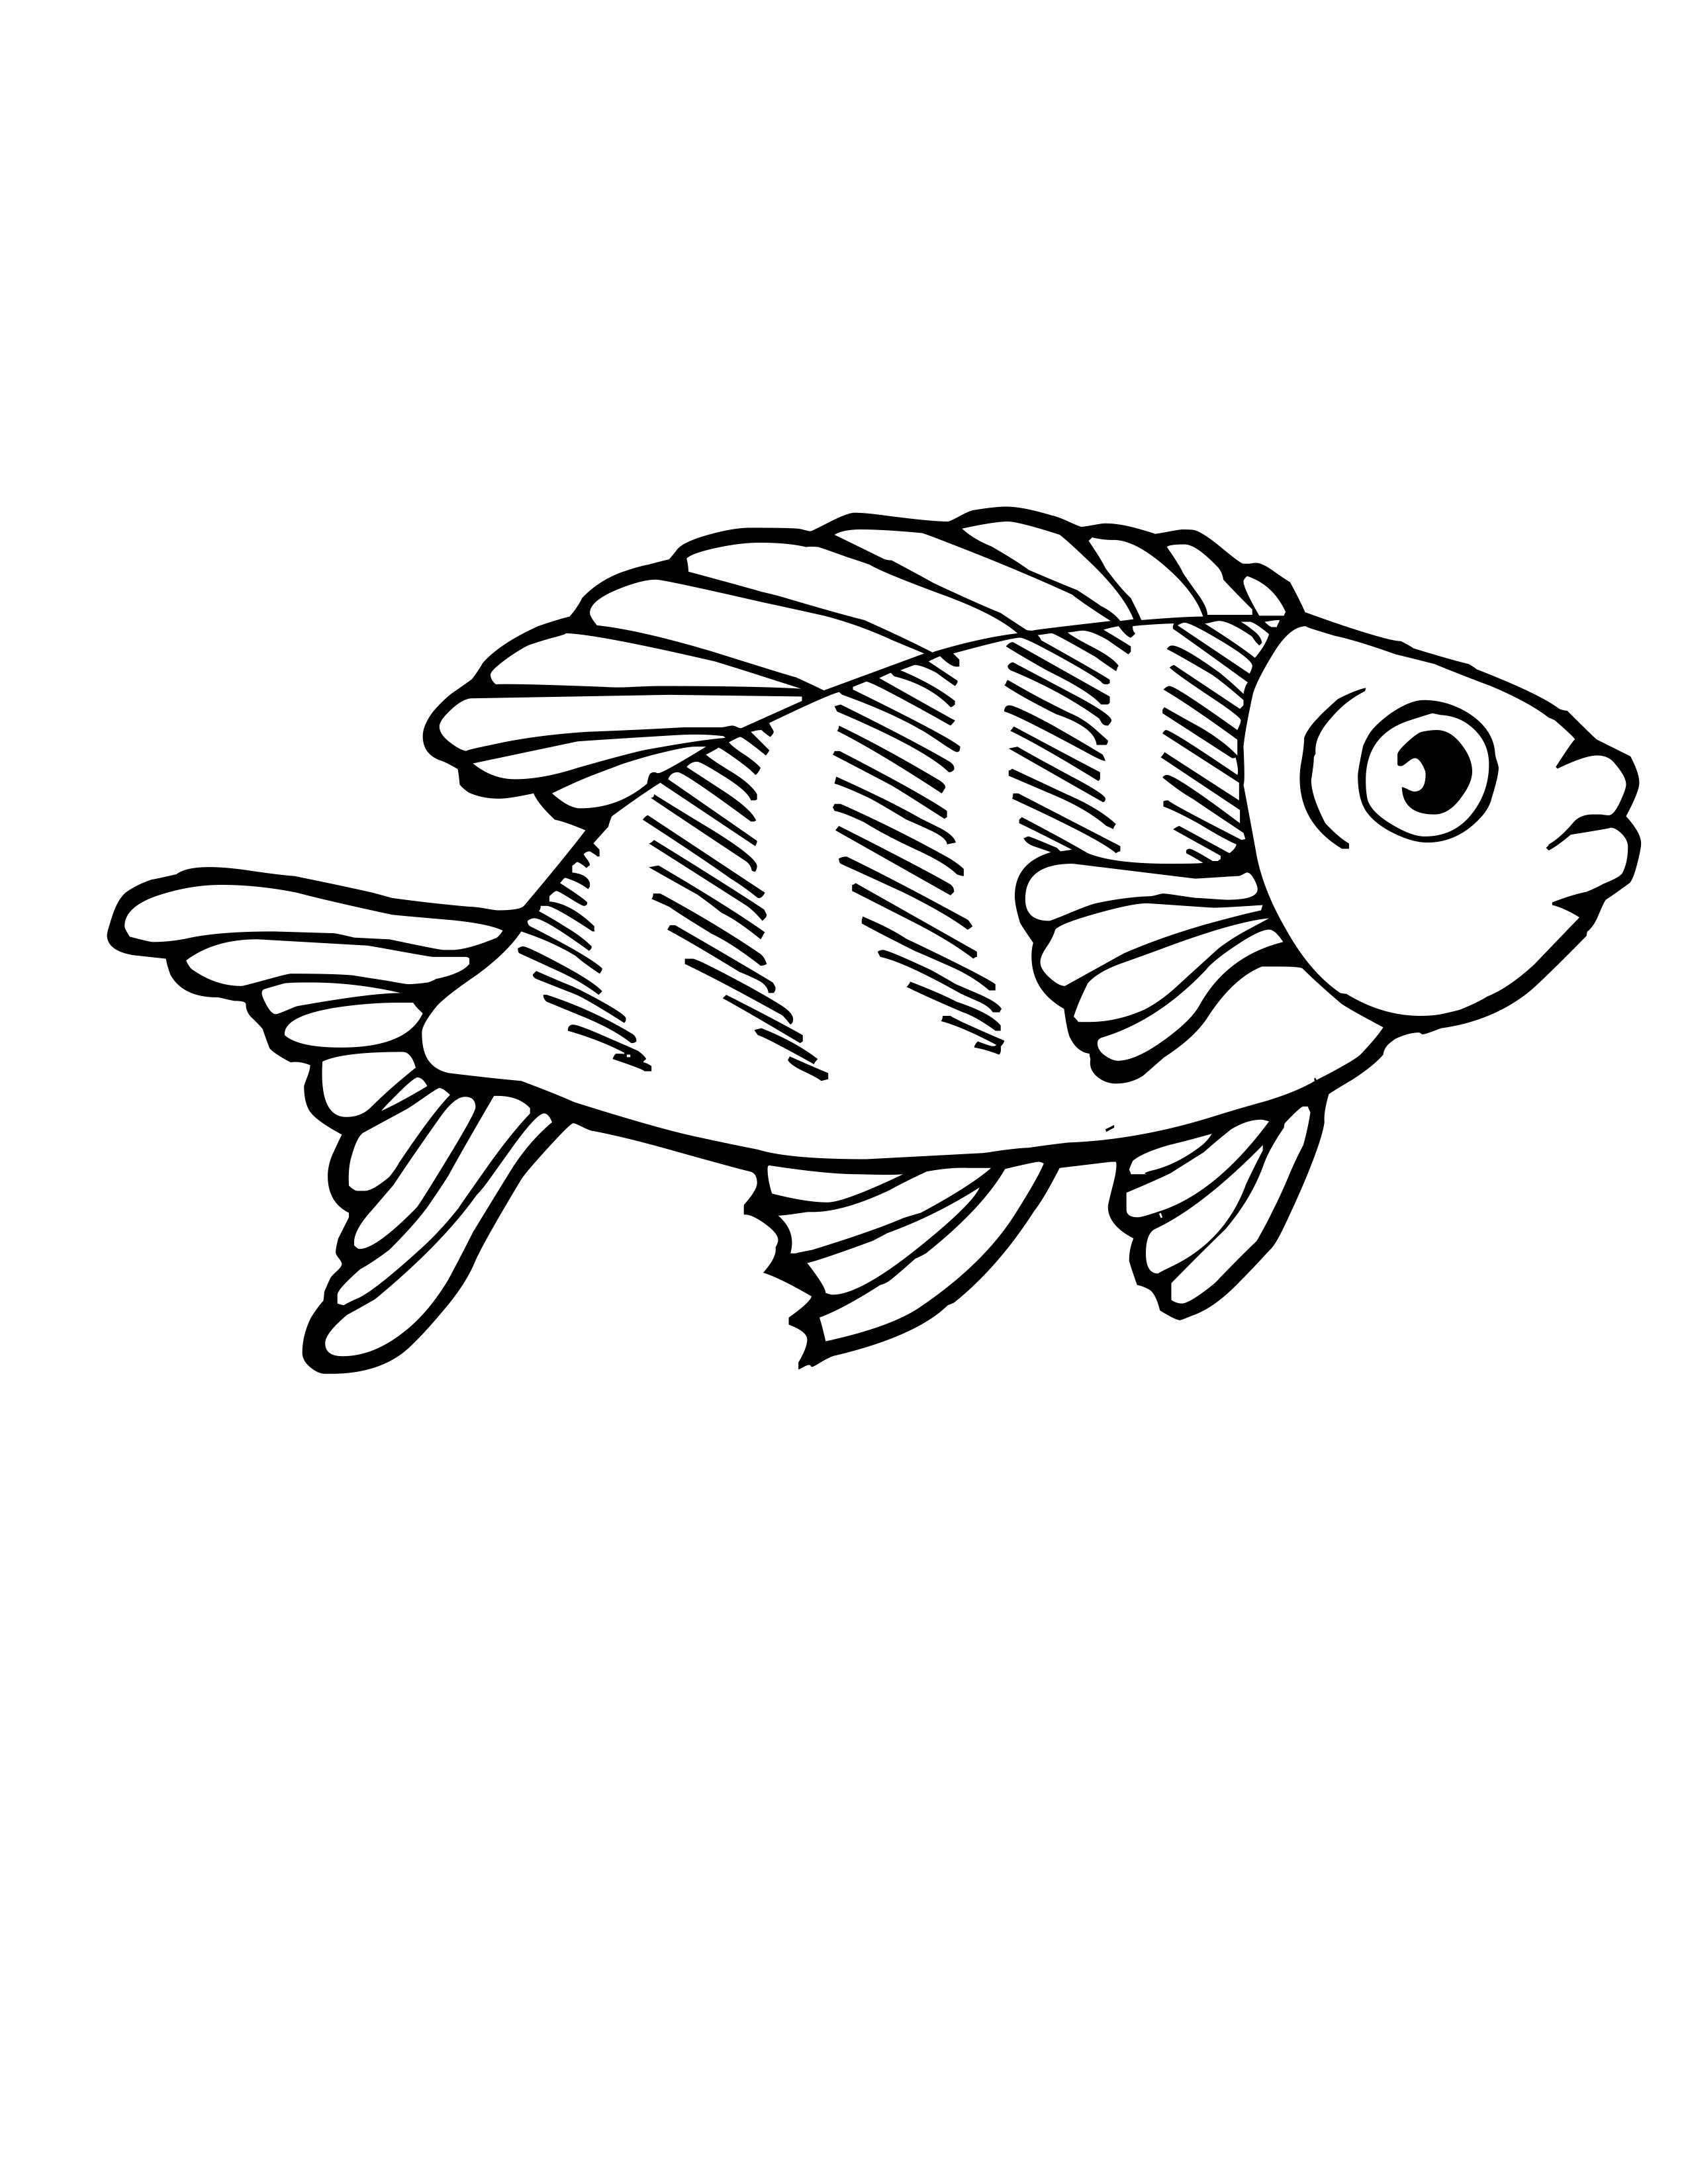 Tropical Fish Coloring Pages | Clipart Panda - Free ...